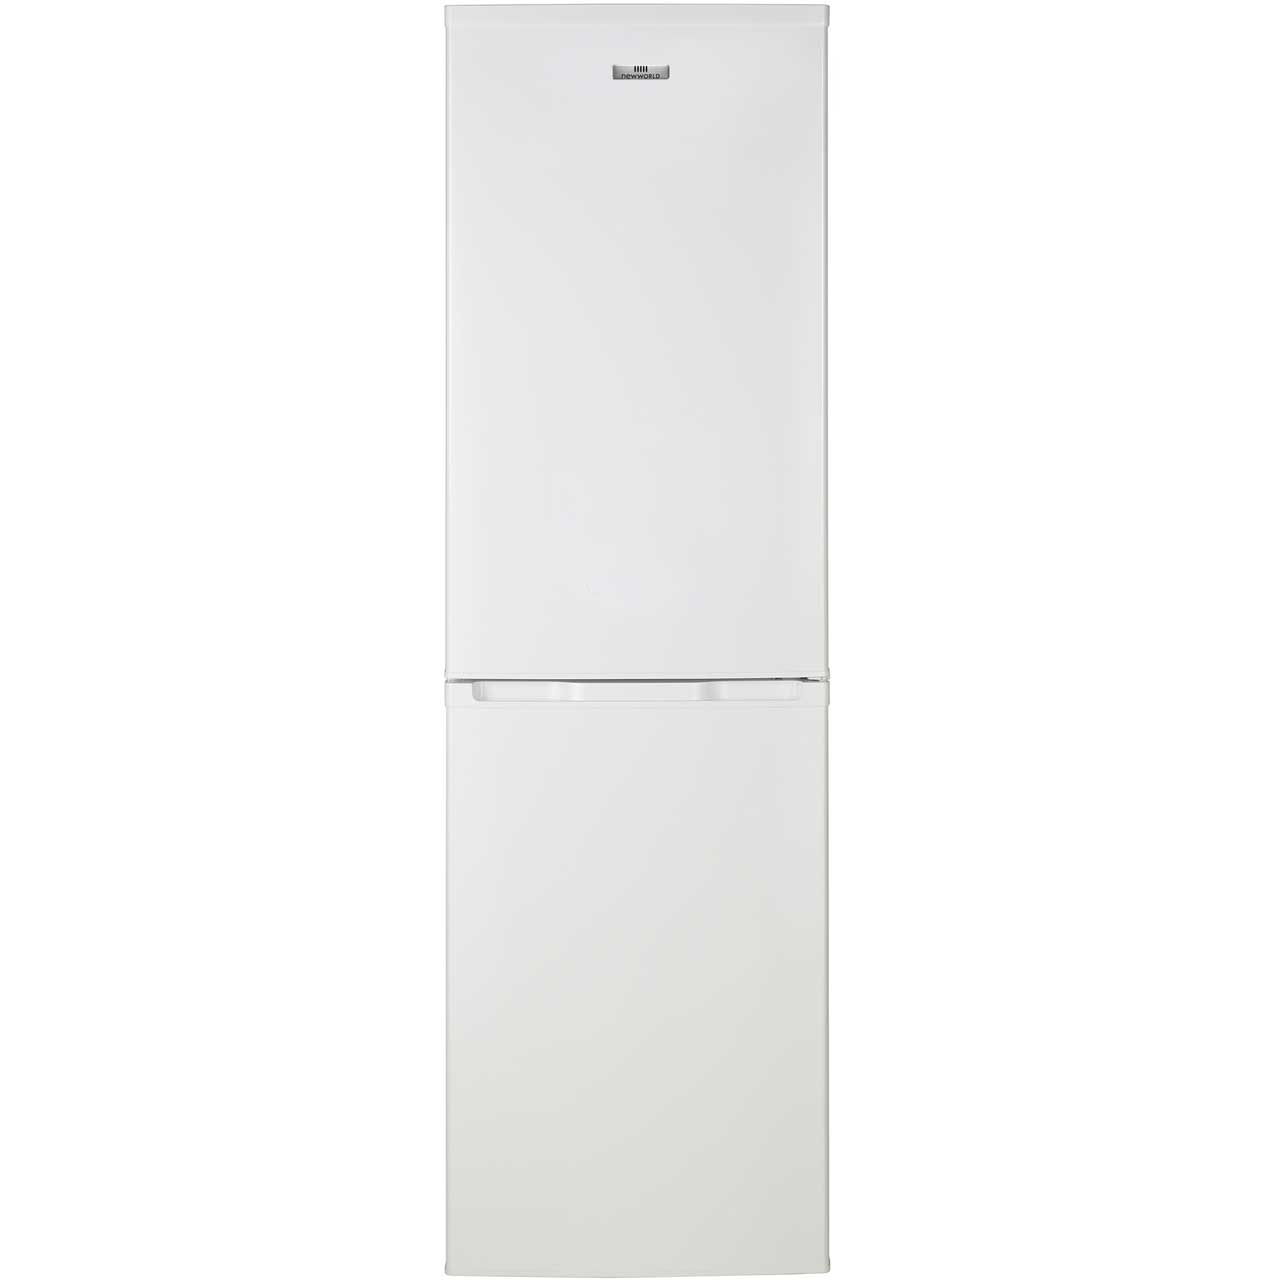 Newworld NWCOMNF5518 Free Standing Fridge Freezer Frost Free in White